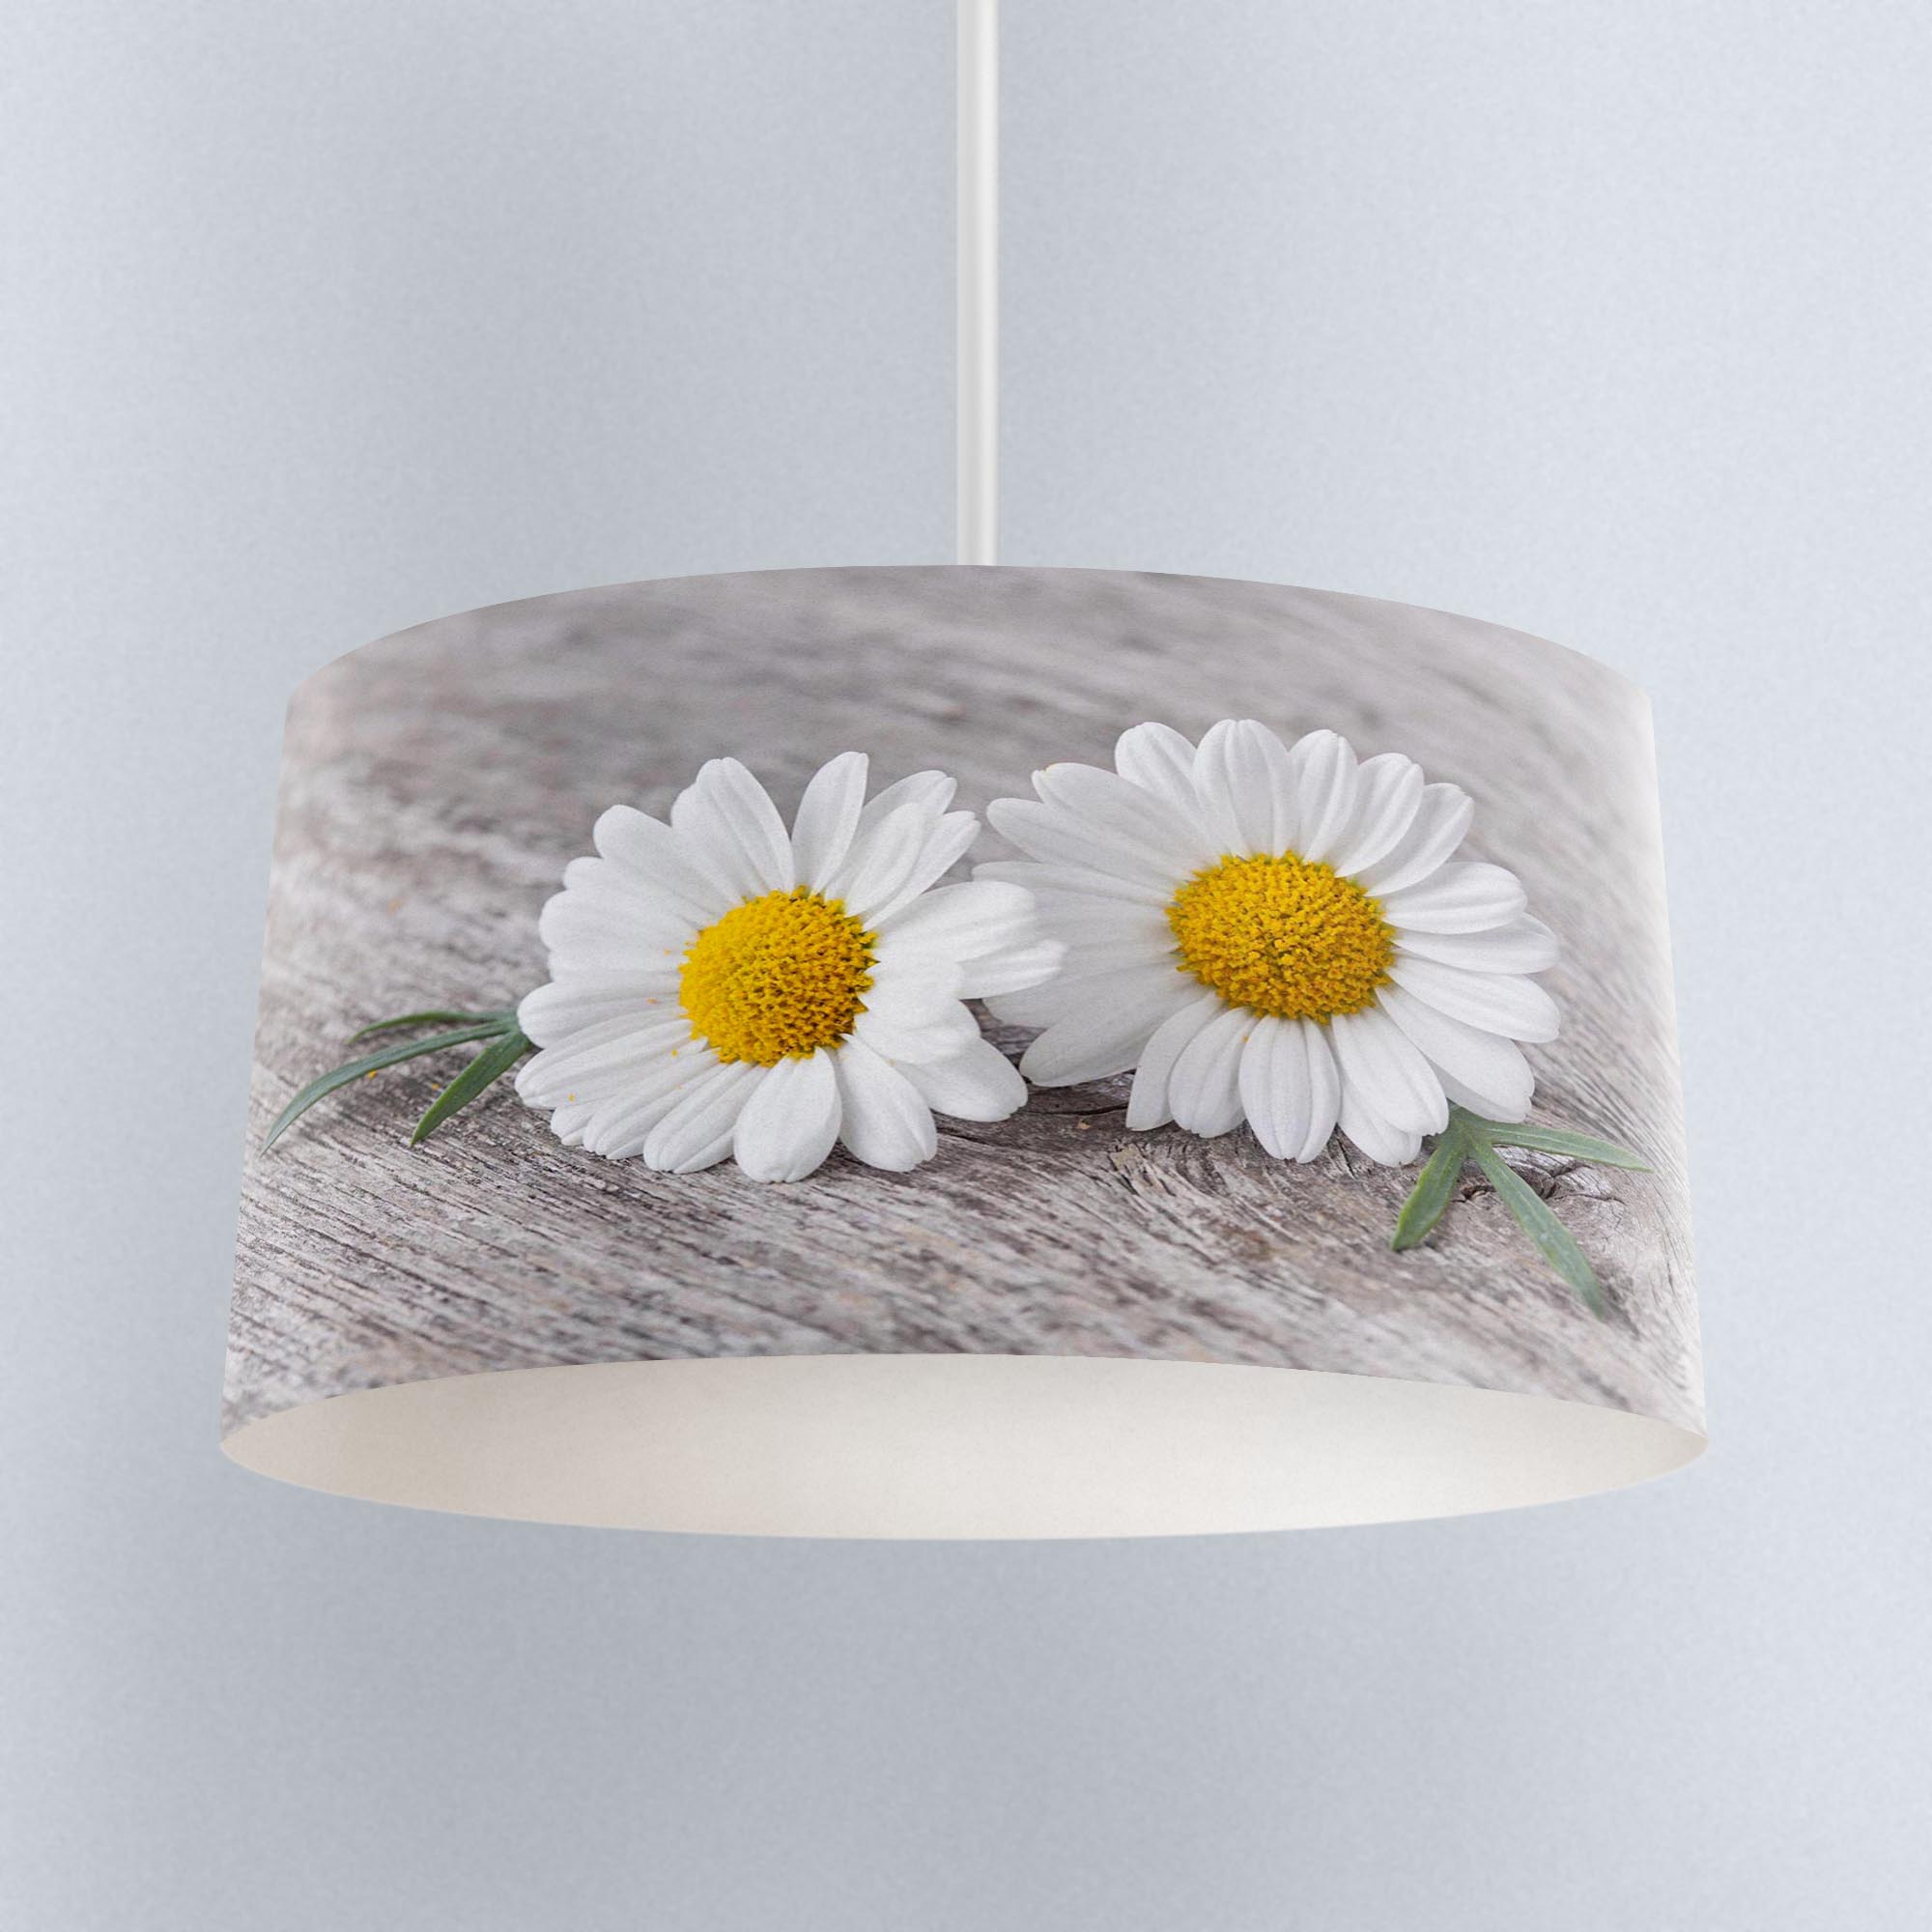 Else Gray Yellow White Daisy Flowers Digital Printed Fabric Chandelier Lamp Drum Lampshade Floor Ceiling Pendant Light Shade